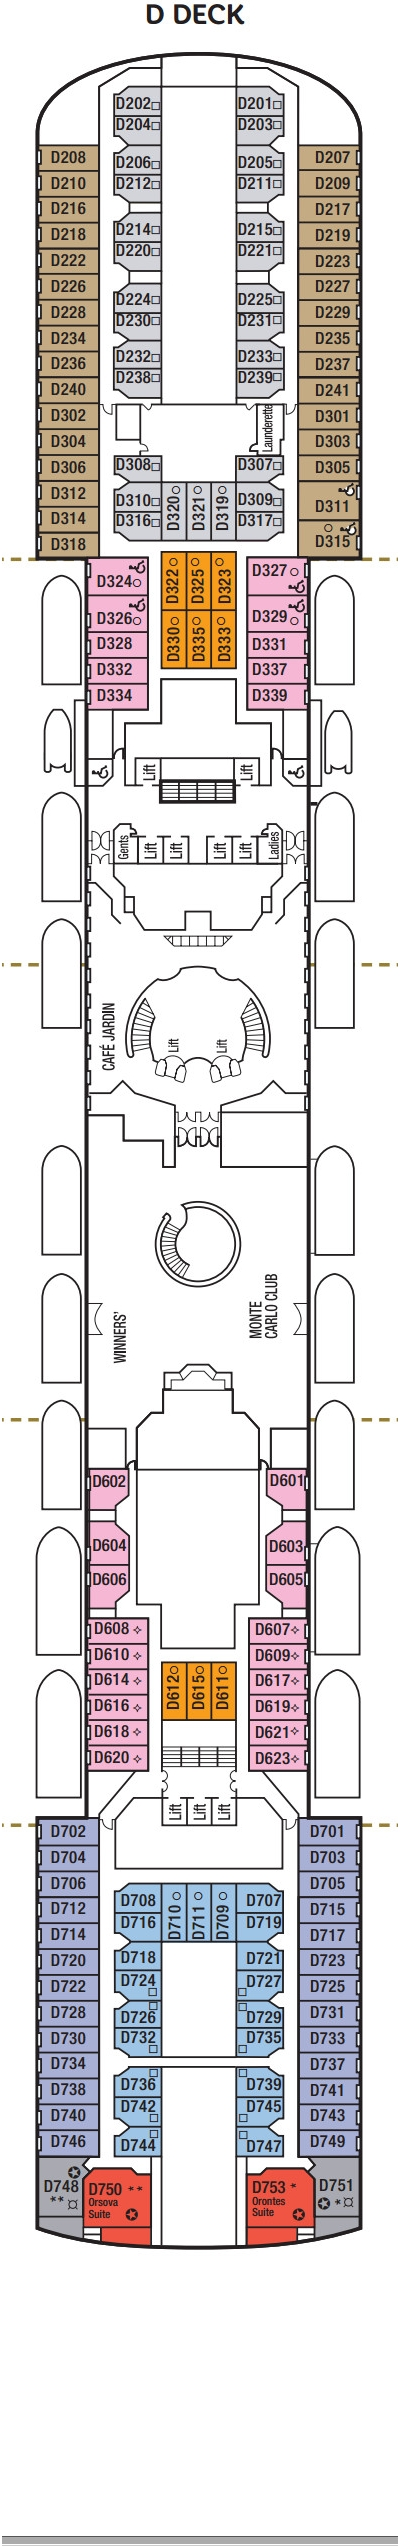 Oceana D Deck layout